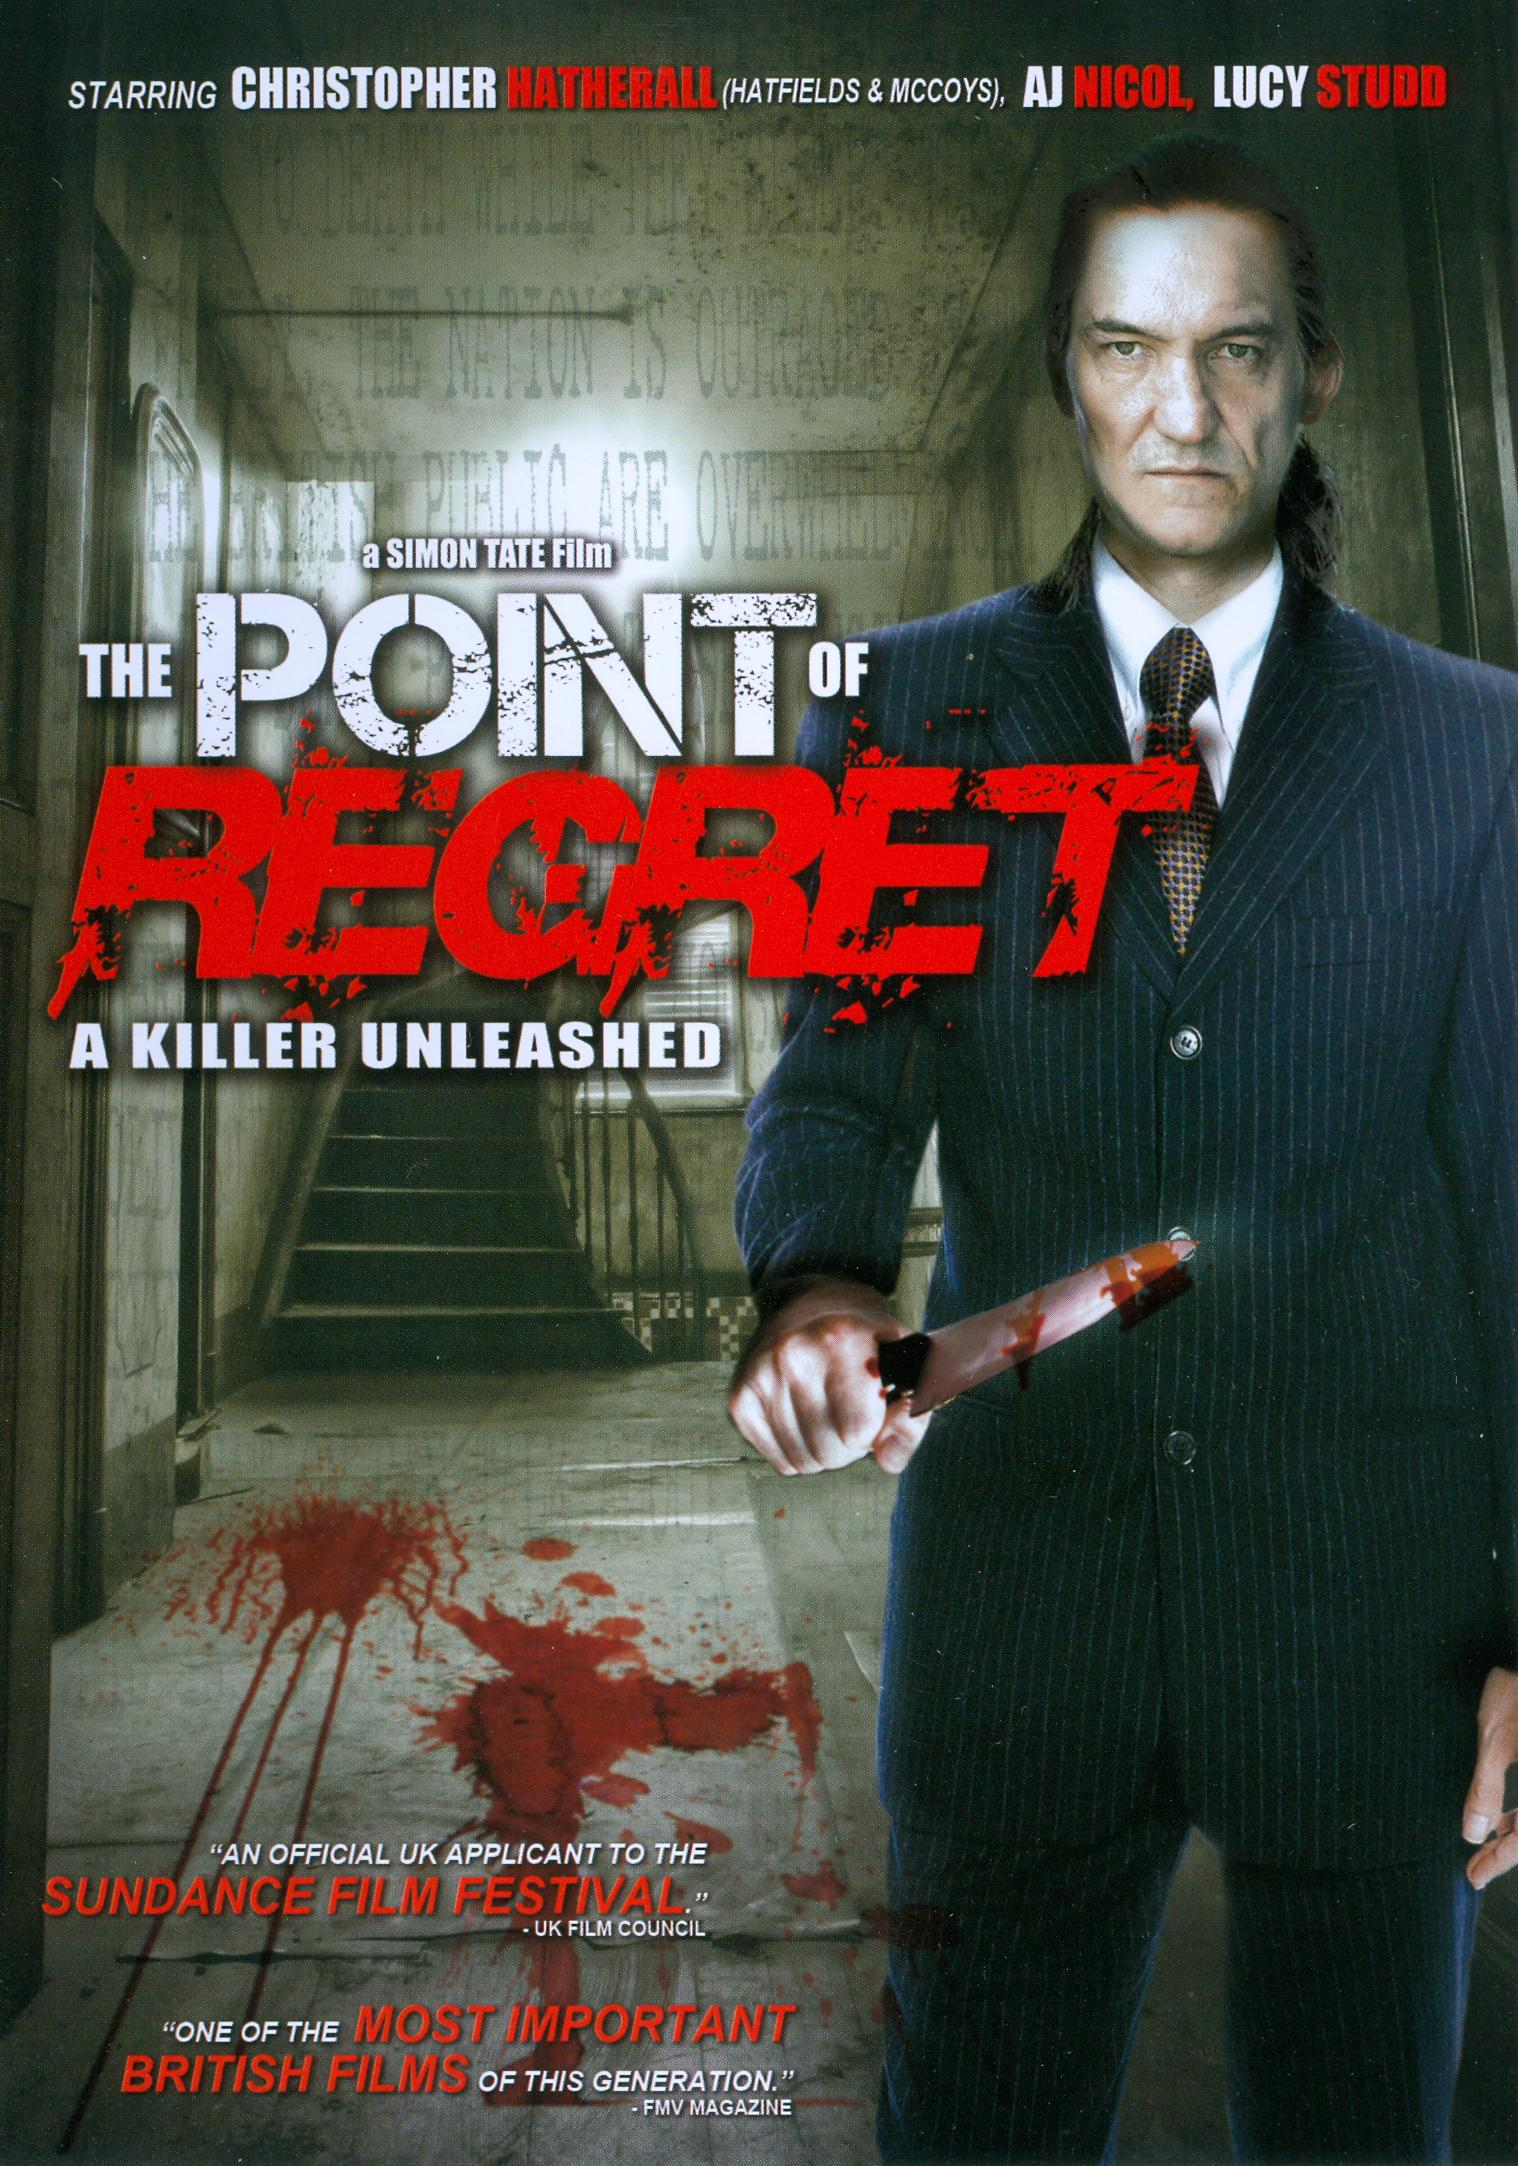 The Point of Regret